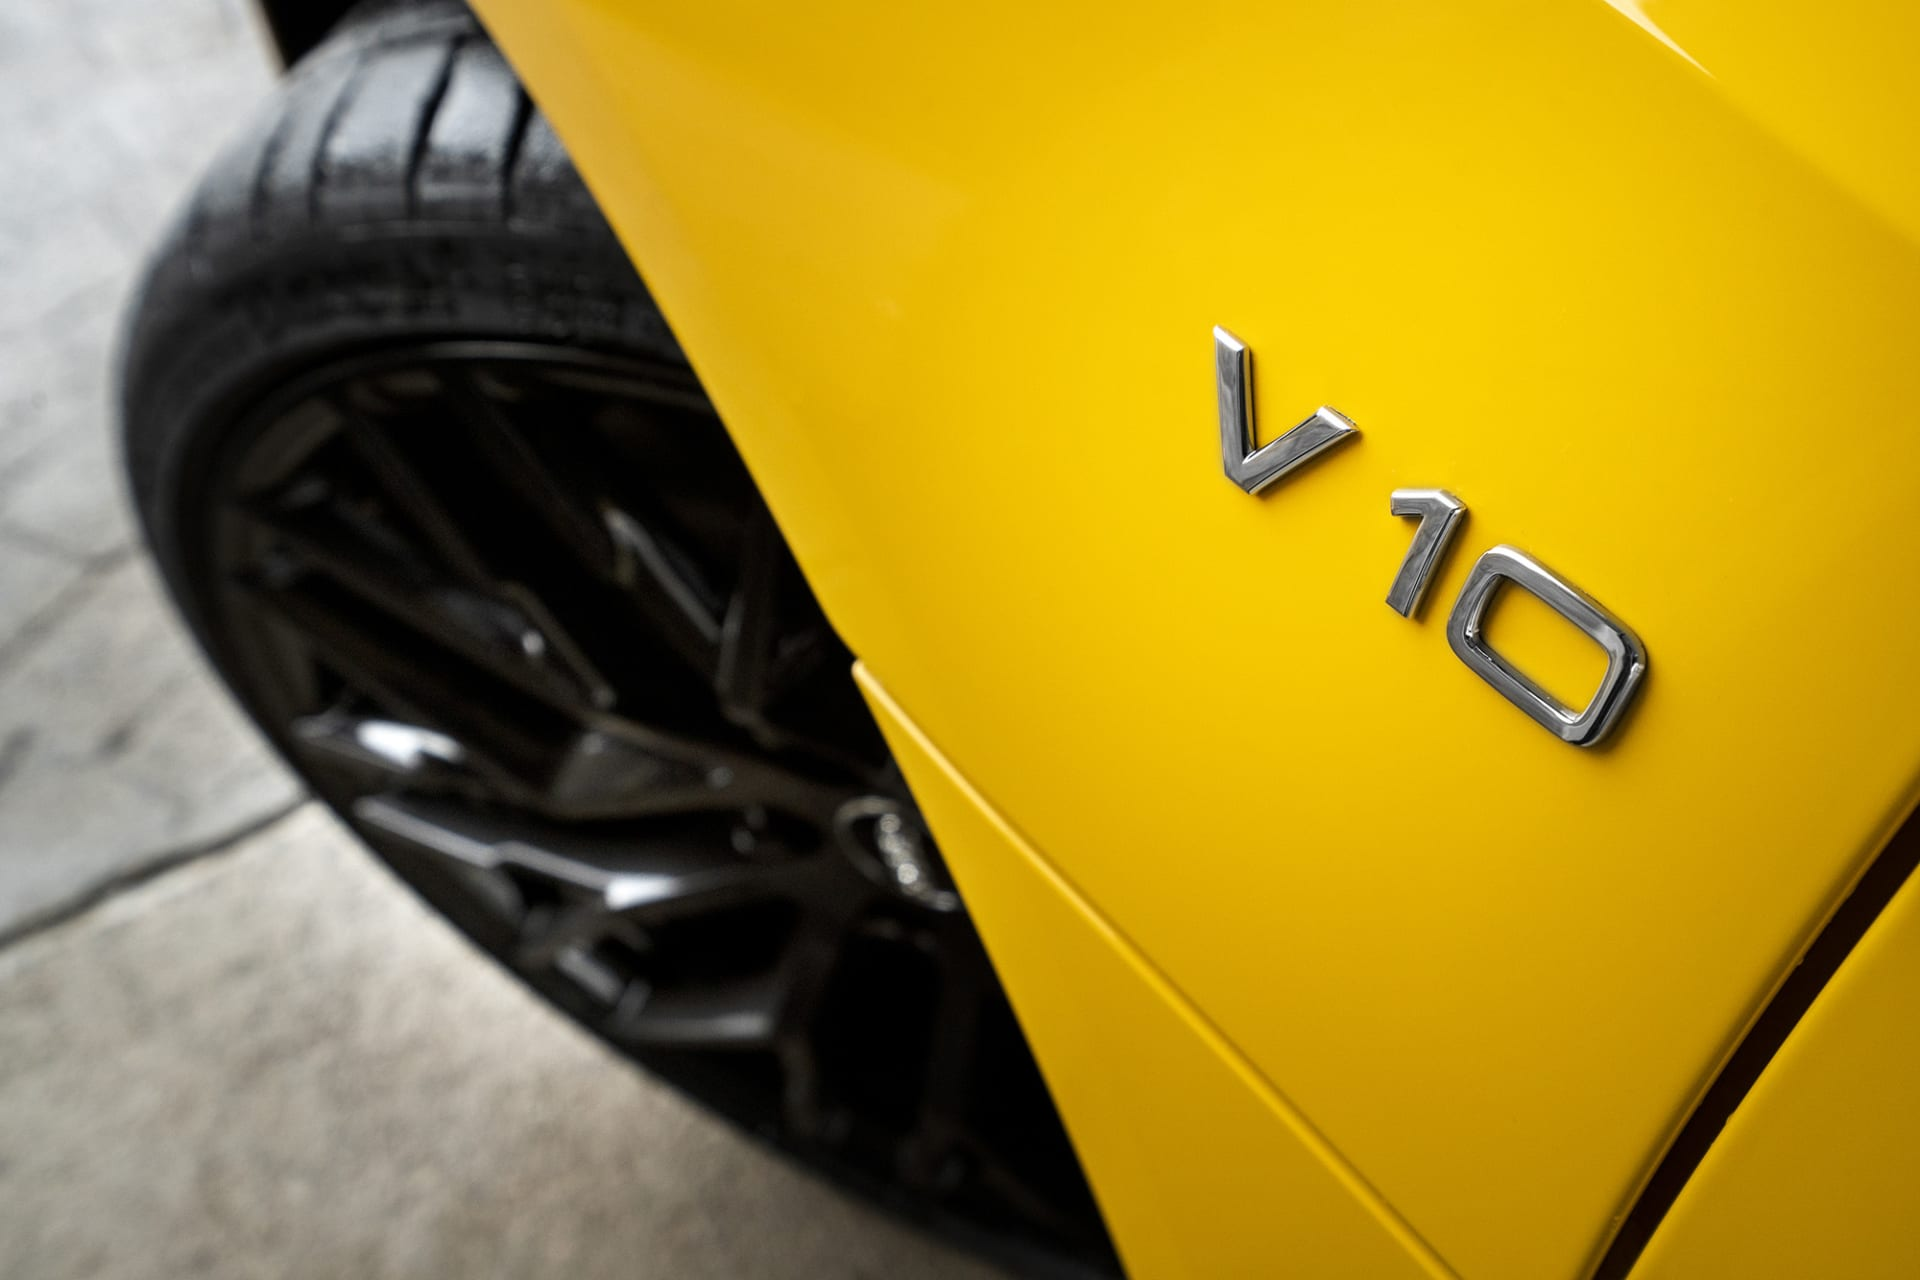 An emblem on the side of the car indicates what type of engine and the amount of cylinders the Audi R8 has.